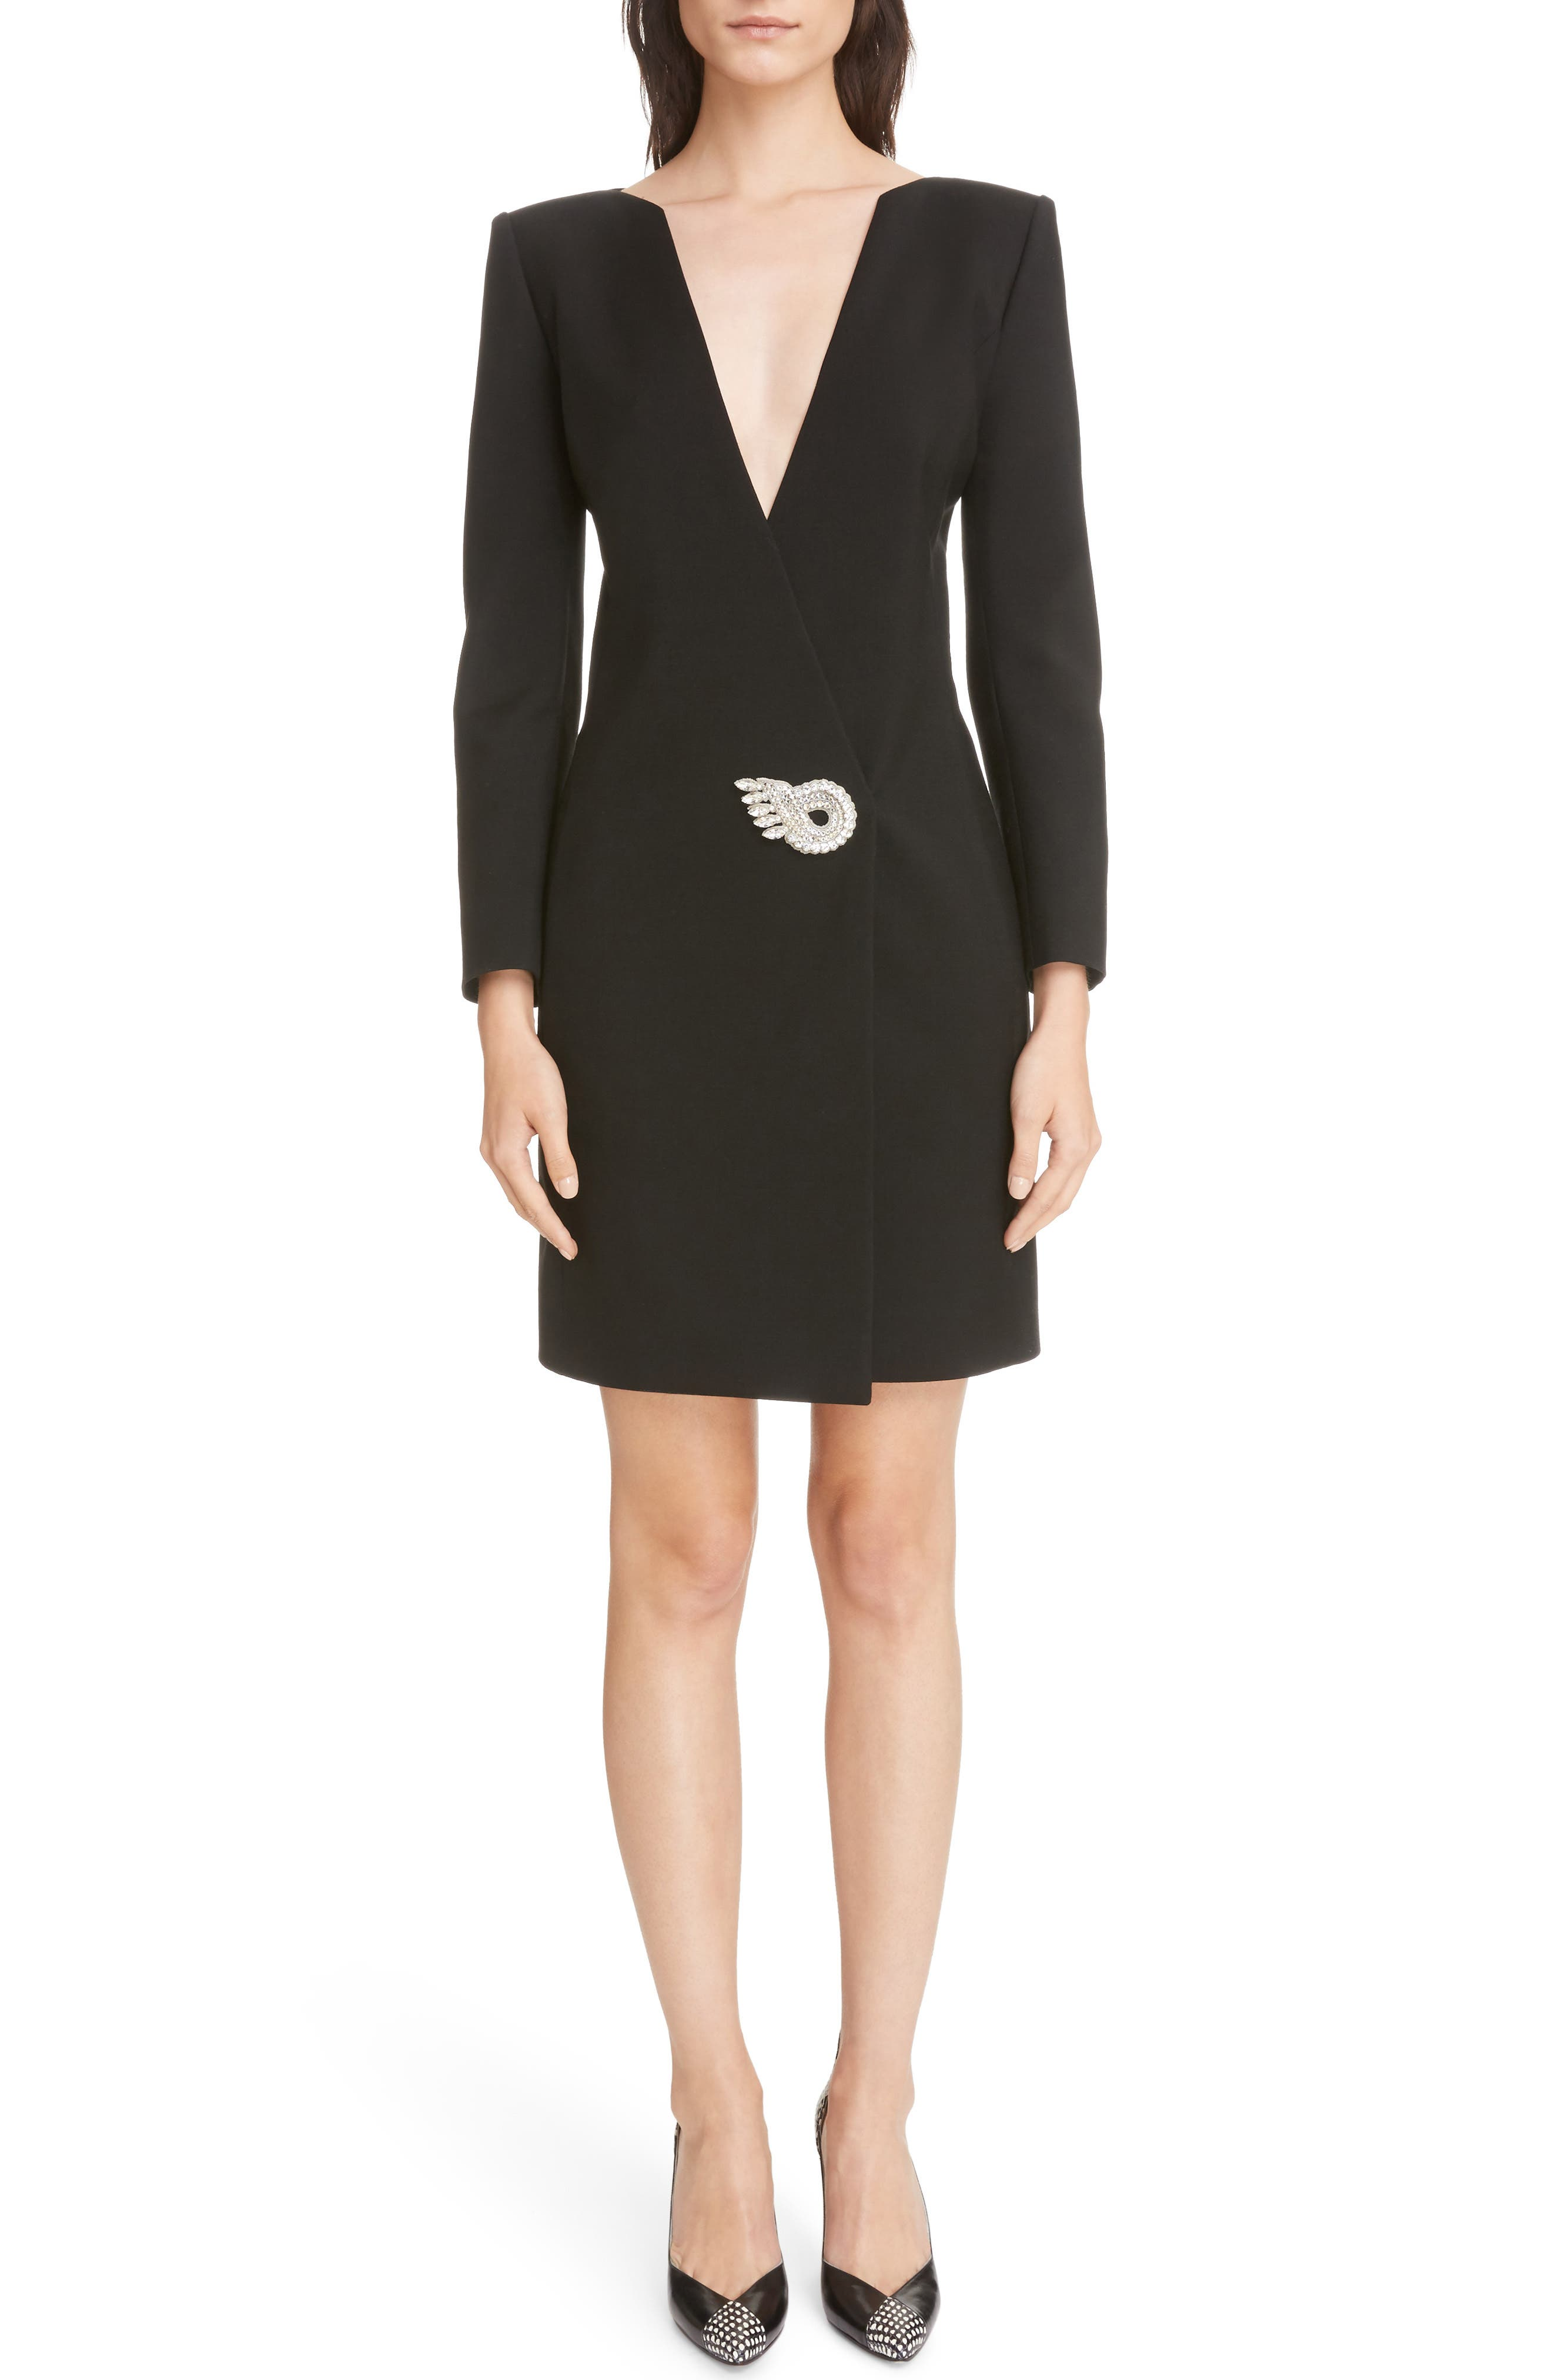 Givenchy Wool & Mohair Brooch Detail Dress